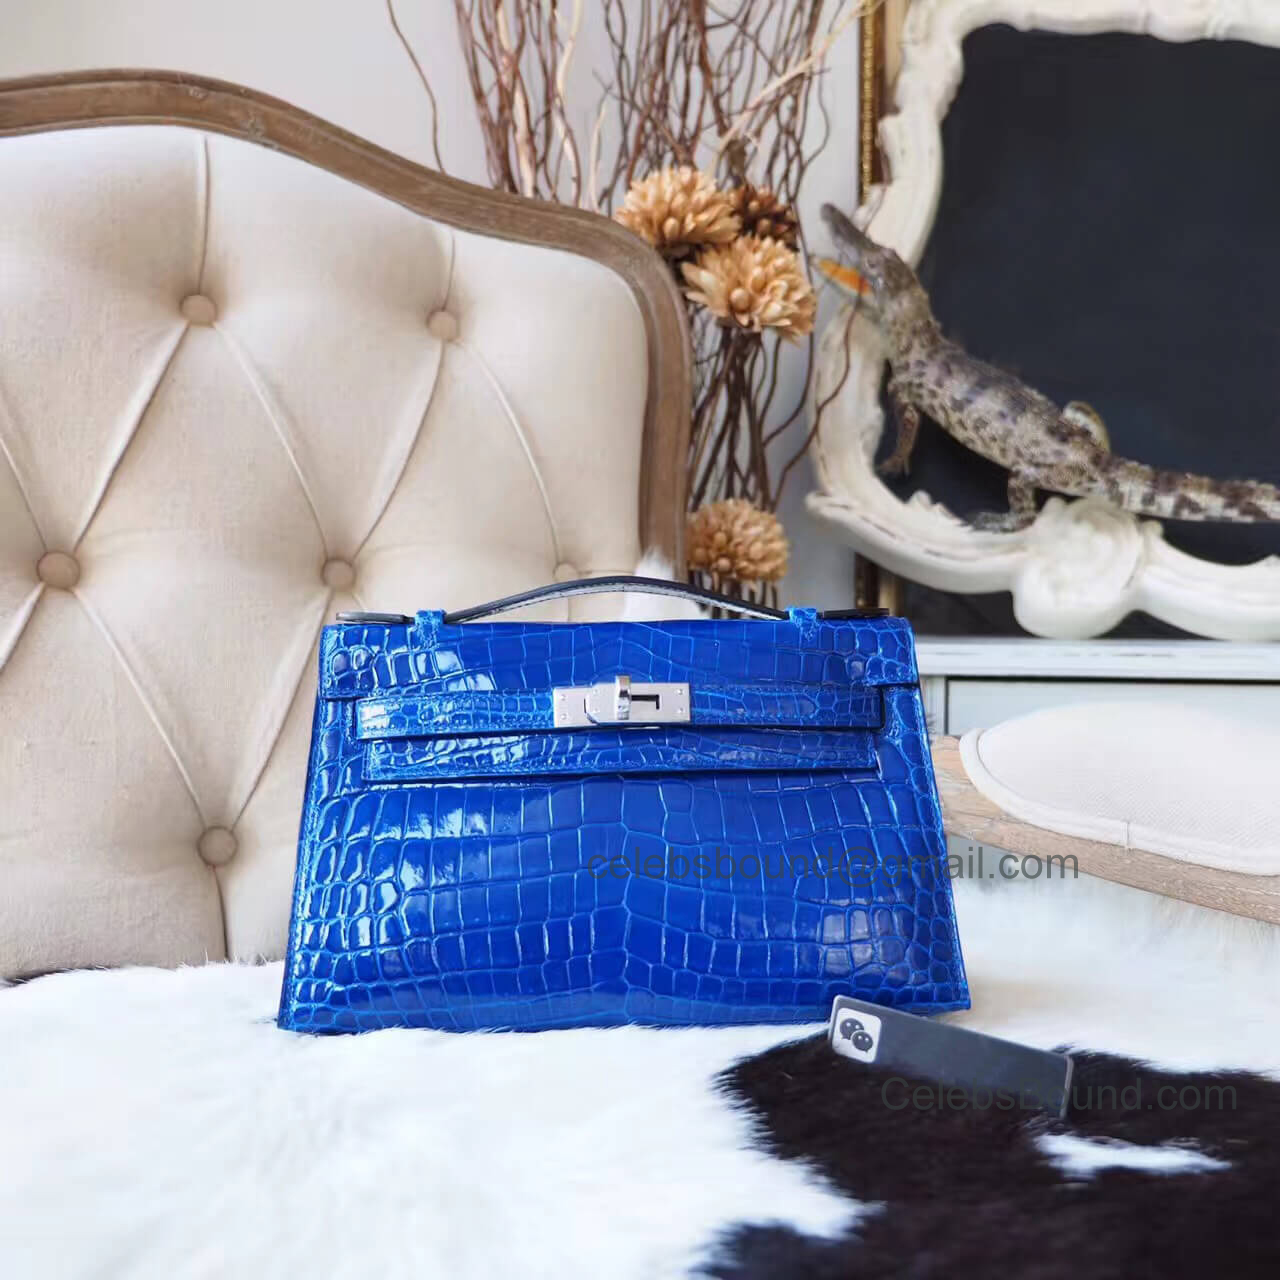 Replica Hermes Mini Kelly 22 Pochette Bag in Blue Electric Shiny Nile Croc PHW